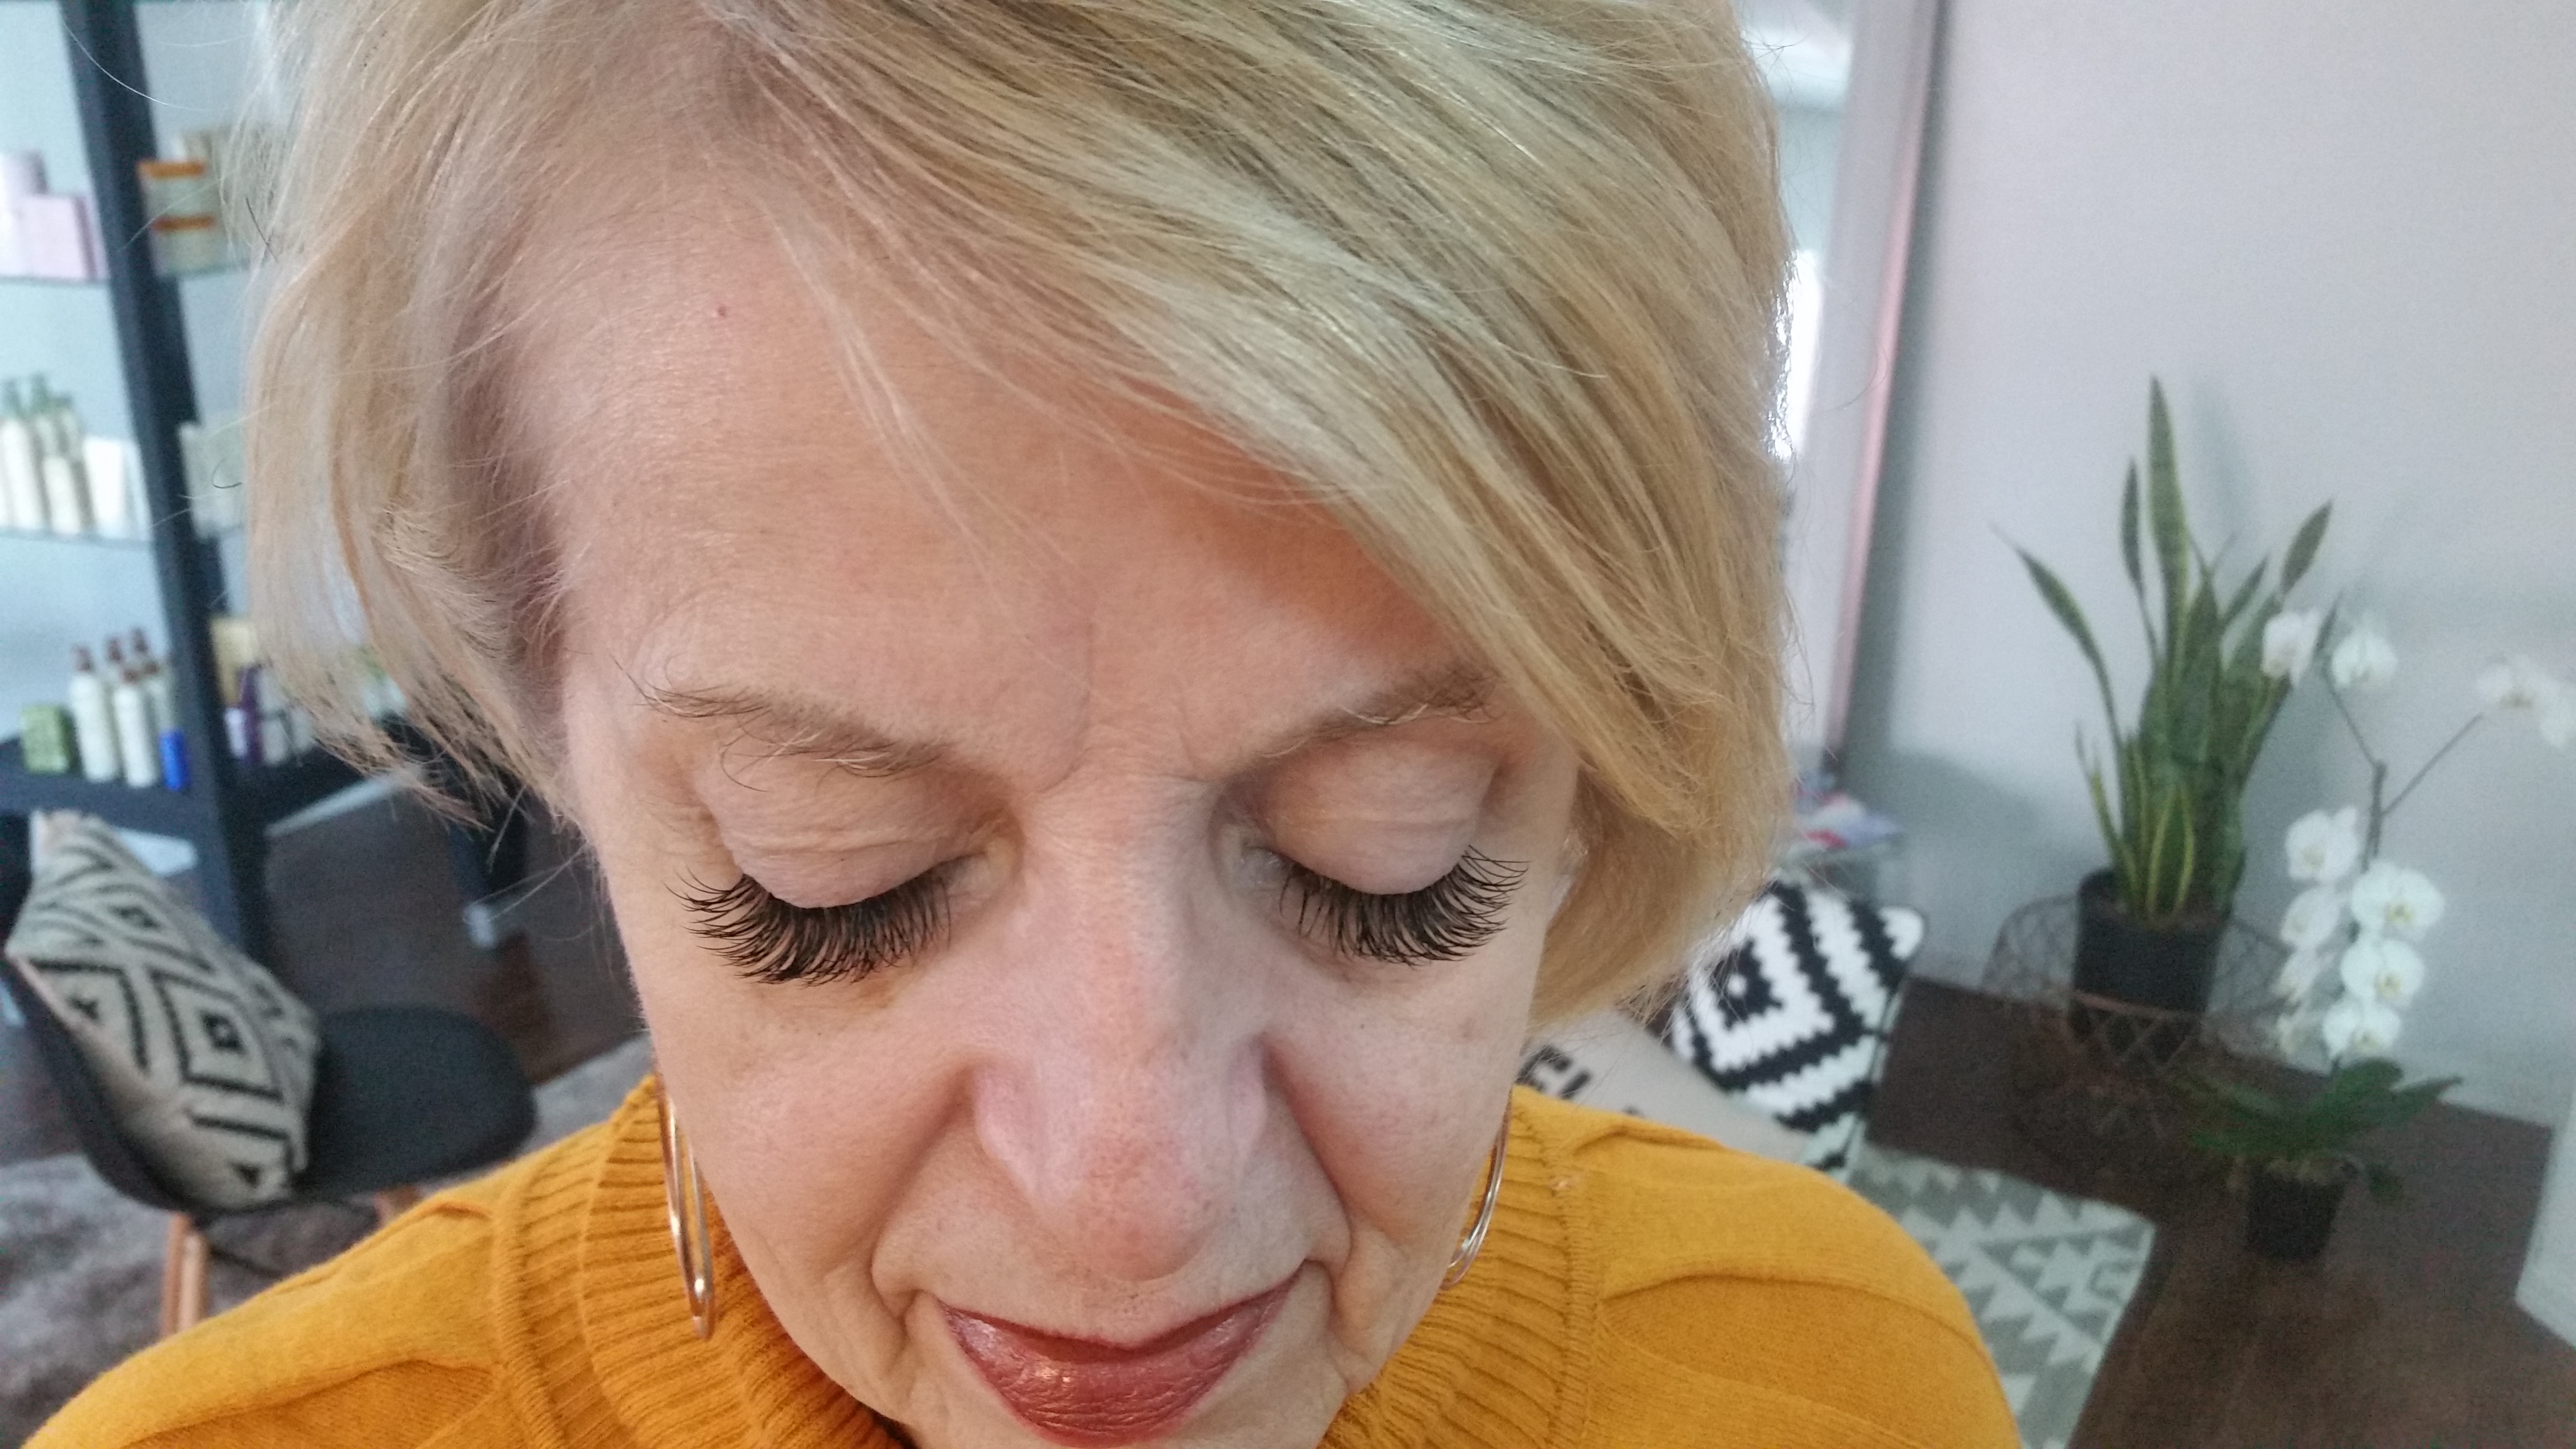 Lash Extensions for All